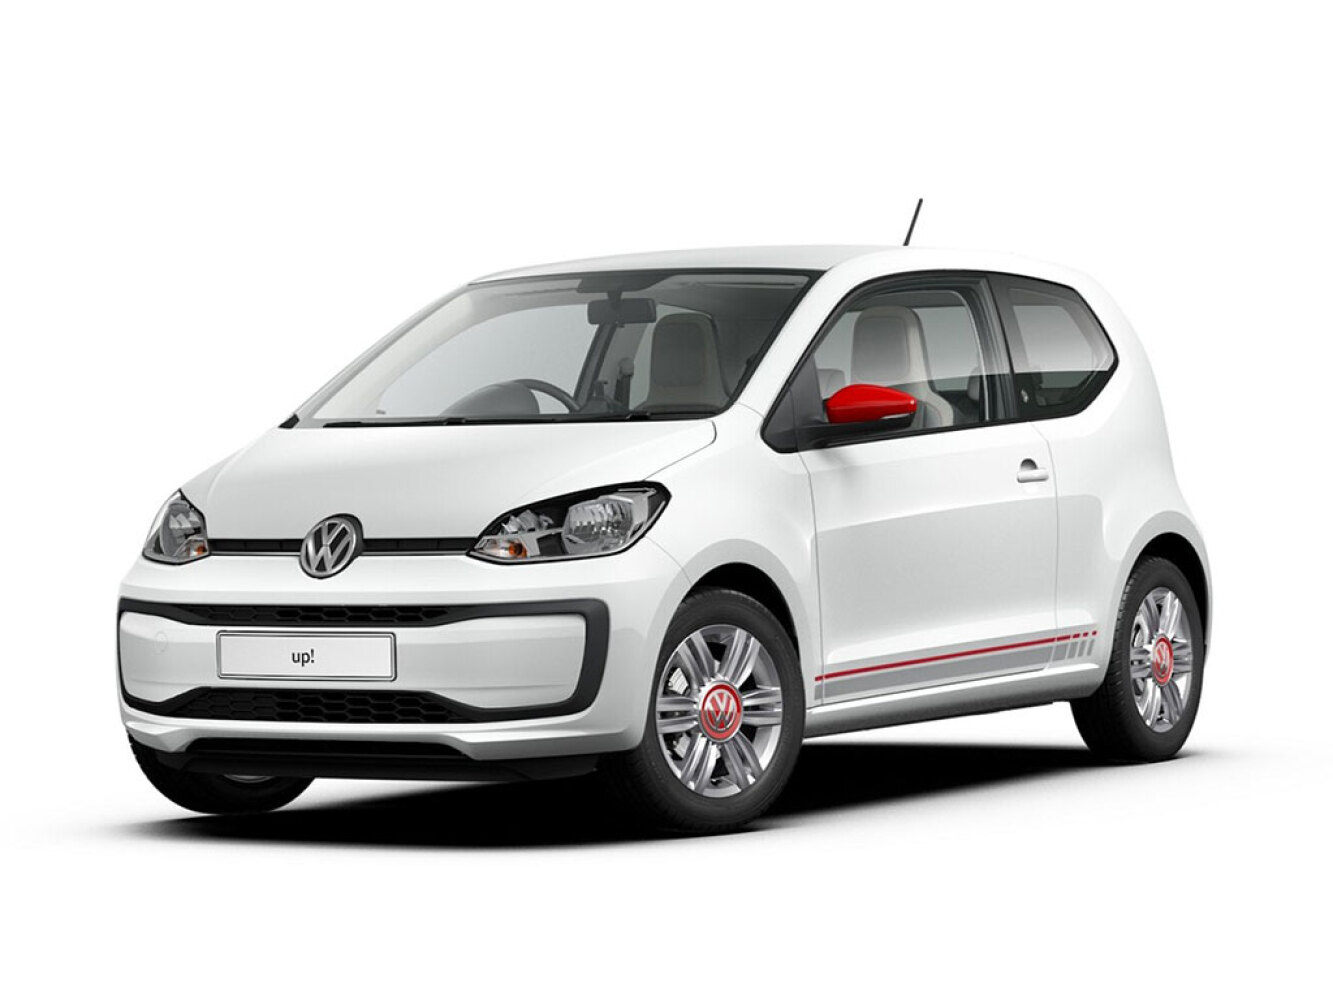 new volkswagen up 1 0 up beats 3dr petrol hatchback for. Black Bedroom Furniture Sets. Home Design Ideas